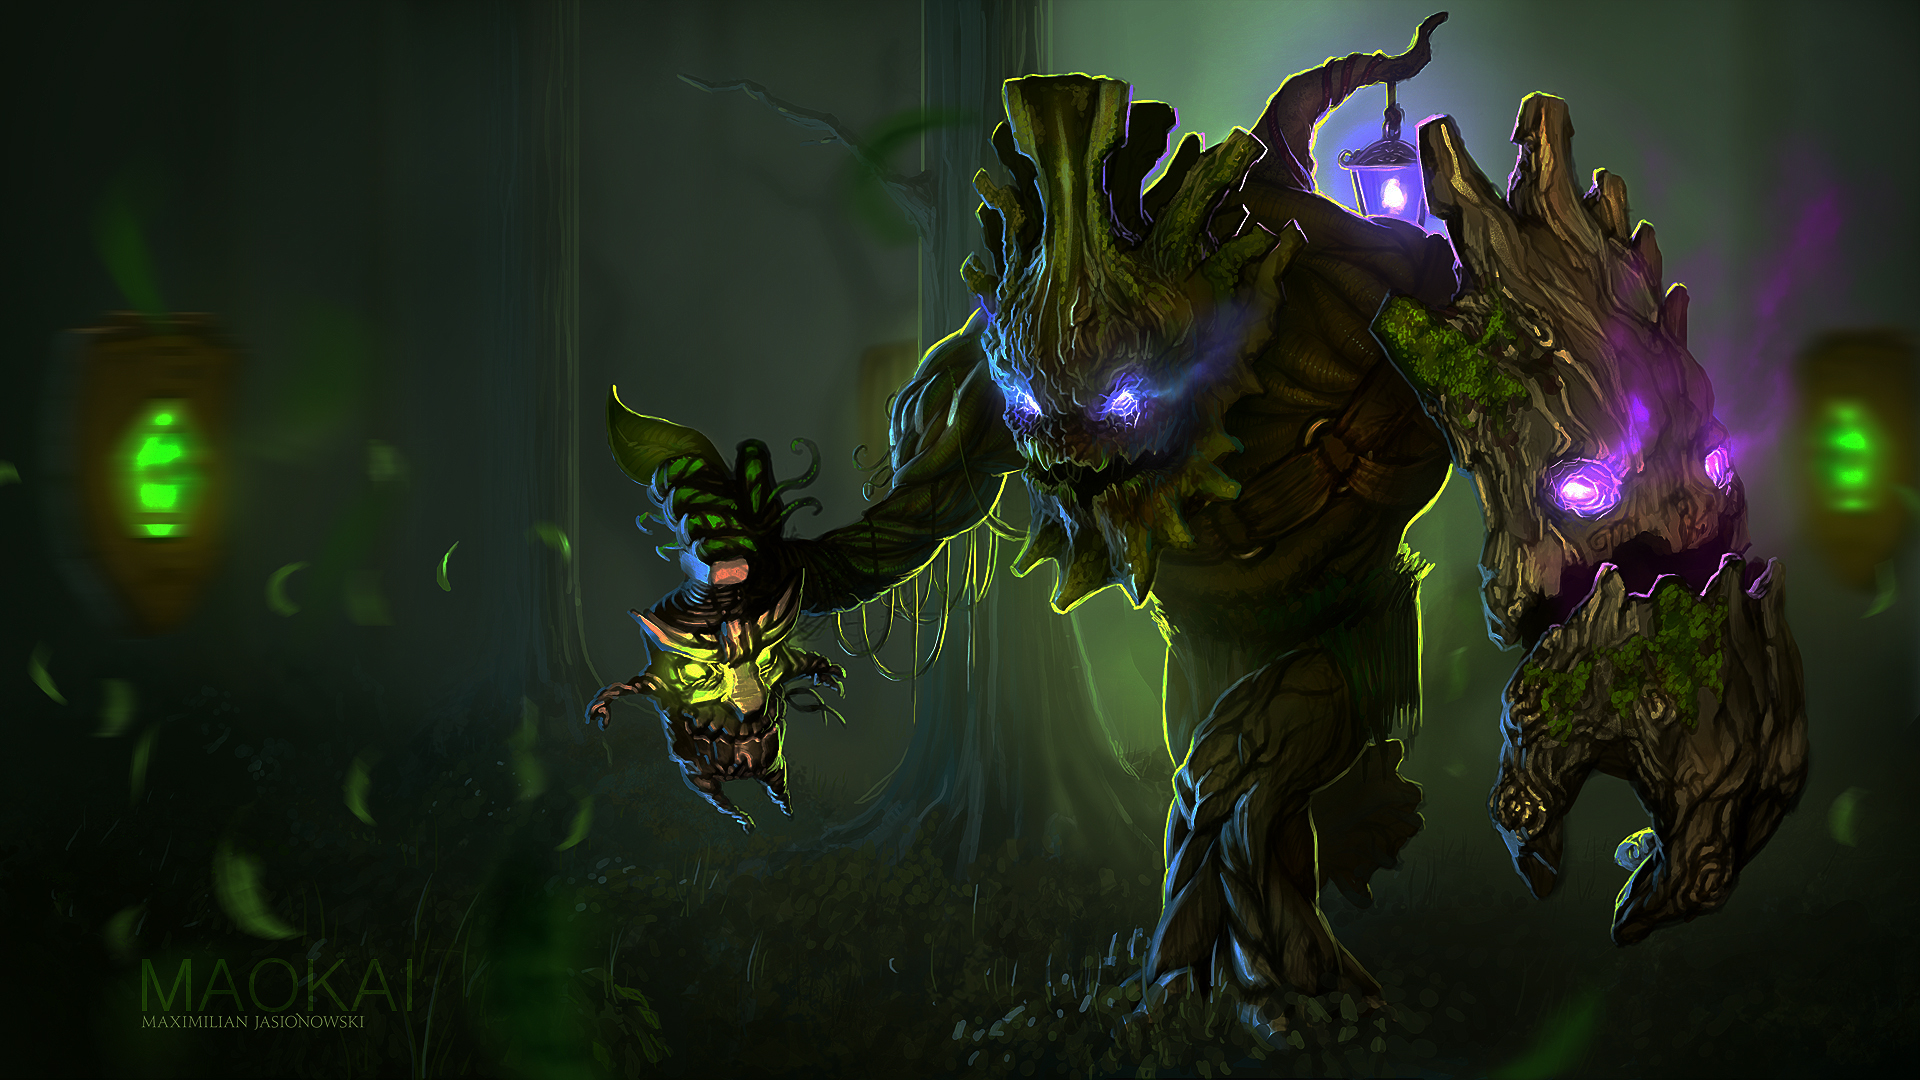 Maokai Wallpaper 1920x1080